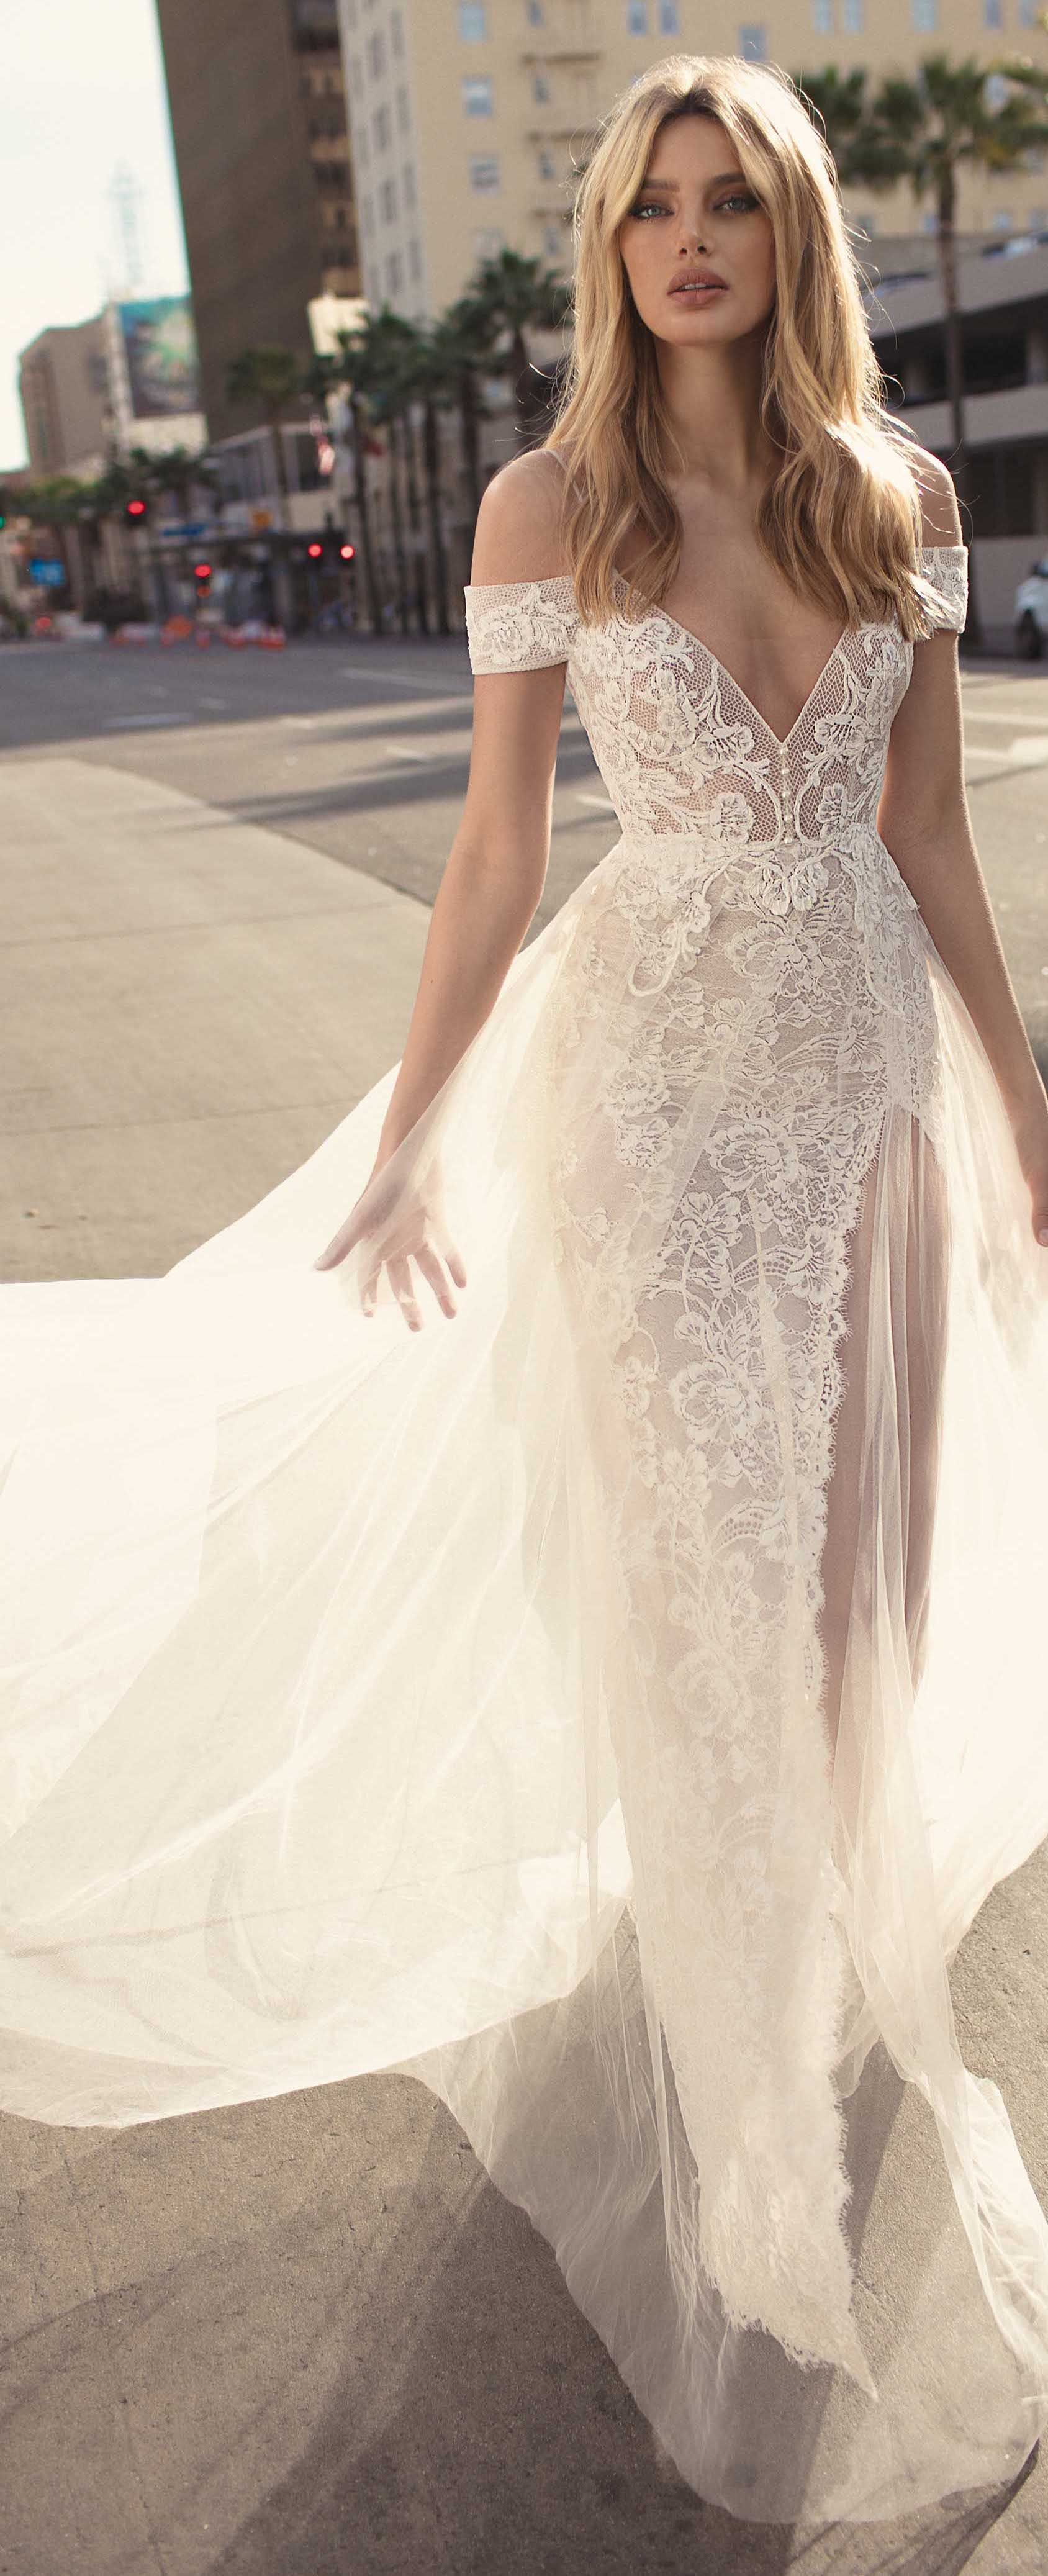 Wedding dress from muse by berta lace fitted bridal gown with cold